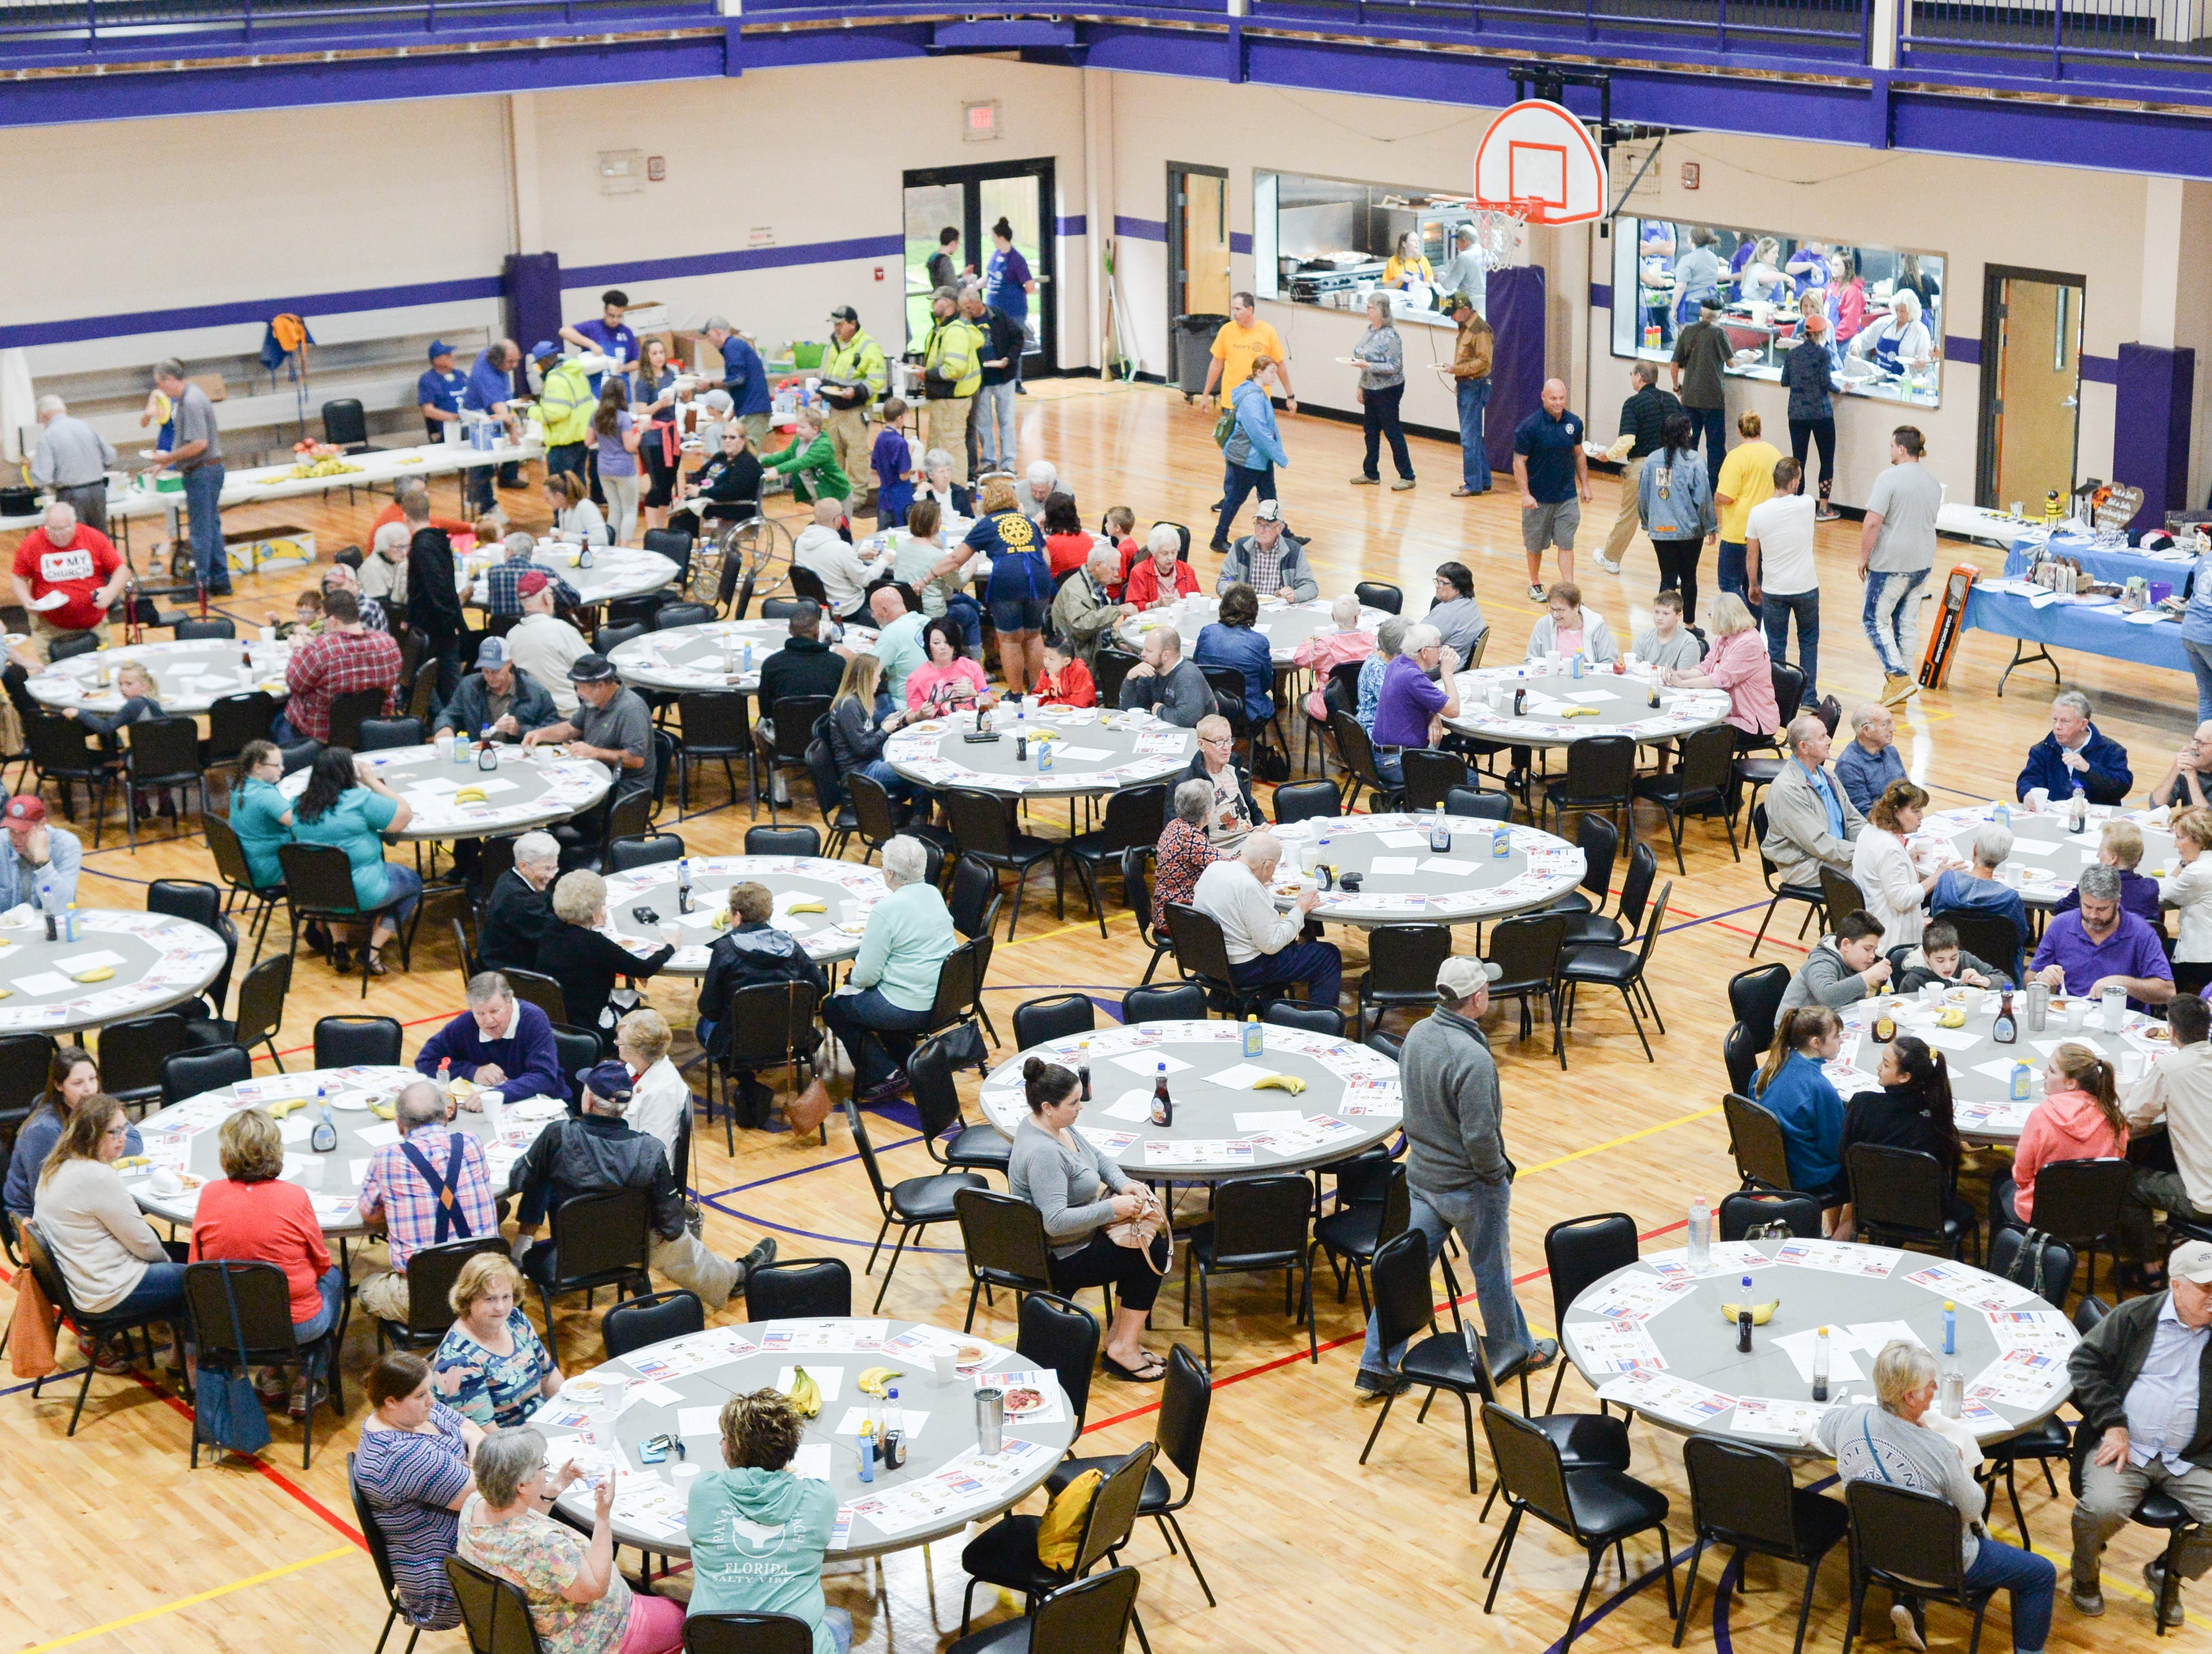 A large crowd gathered for the Strawberry Festival Pancake Breakfast & Silent Auction presented by the Portland Rotary Club & Portland FFA at First Baptist Church Portland on Saturday, May 11.